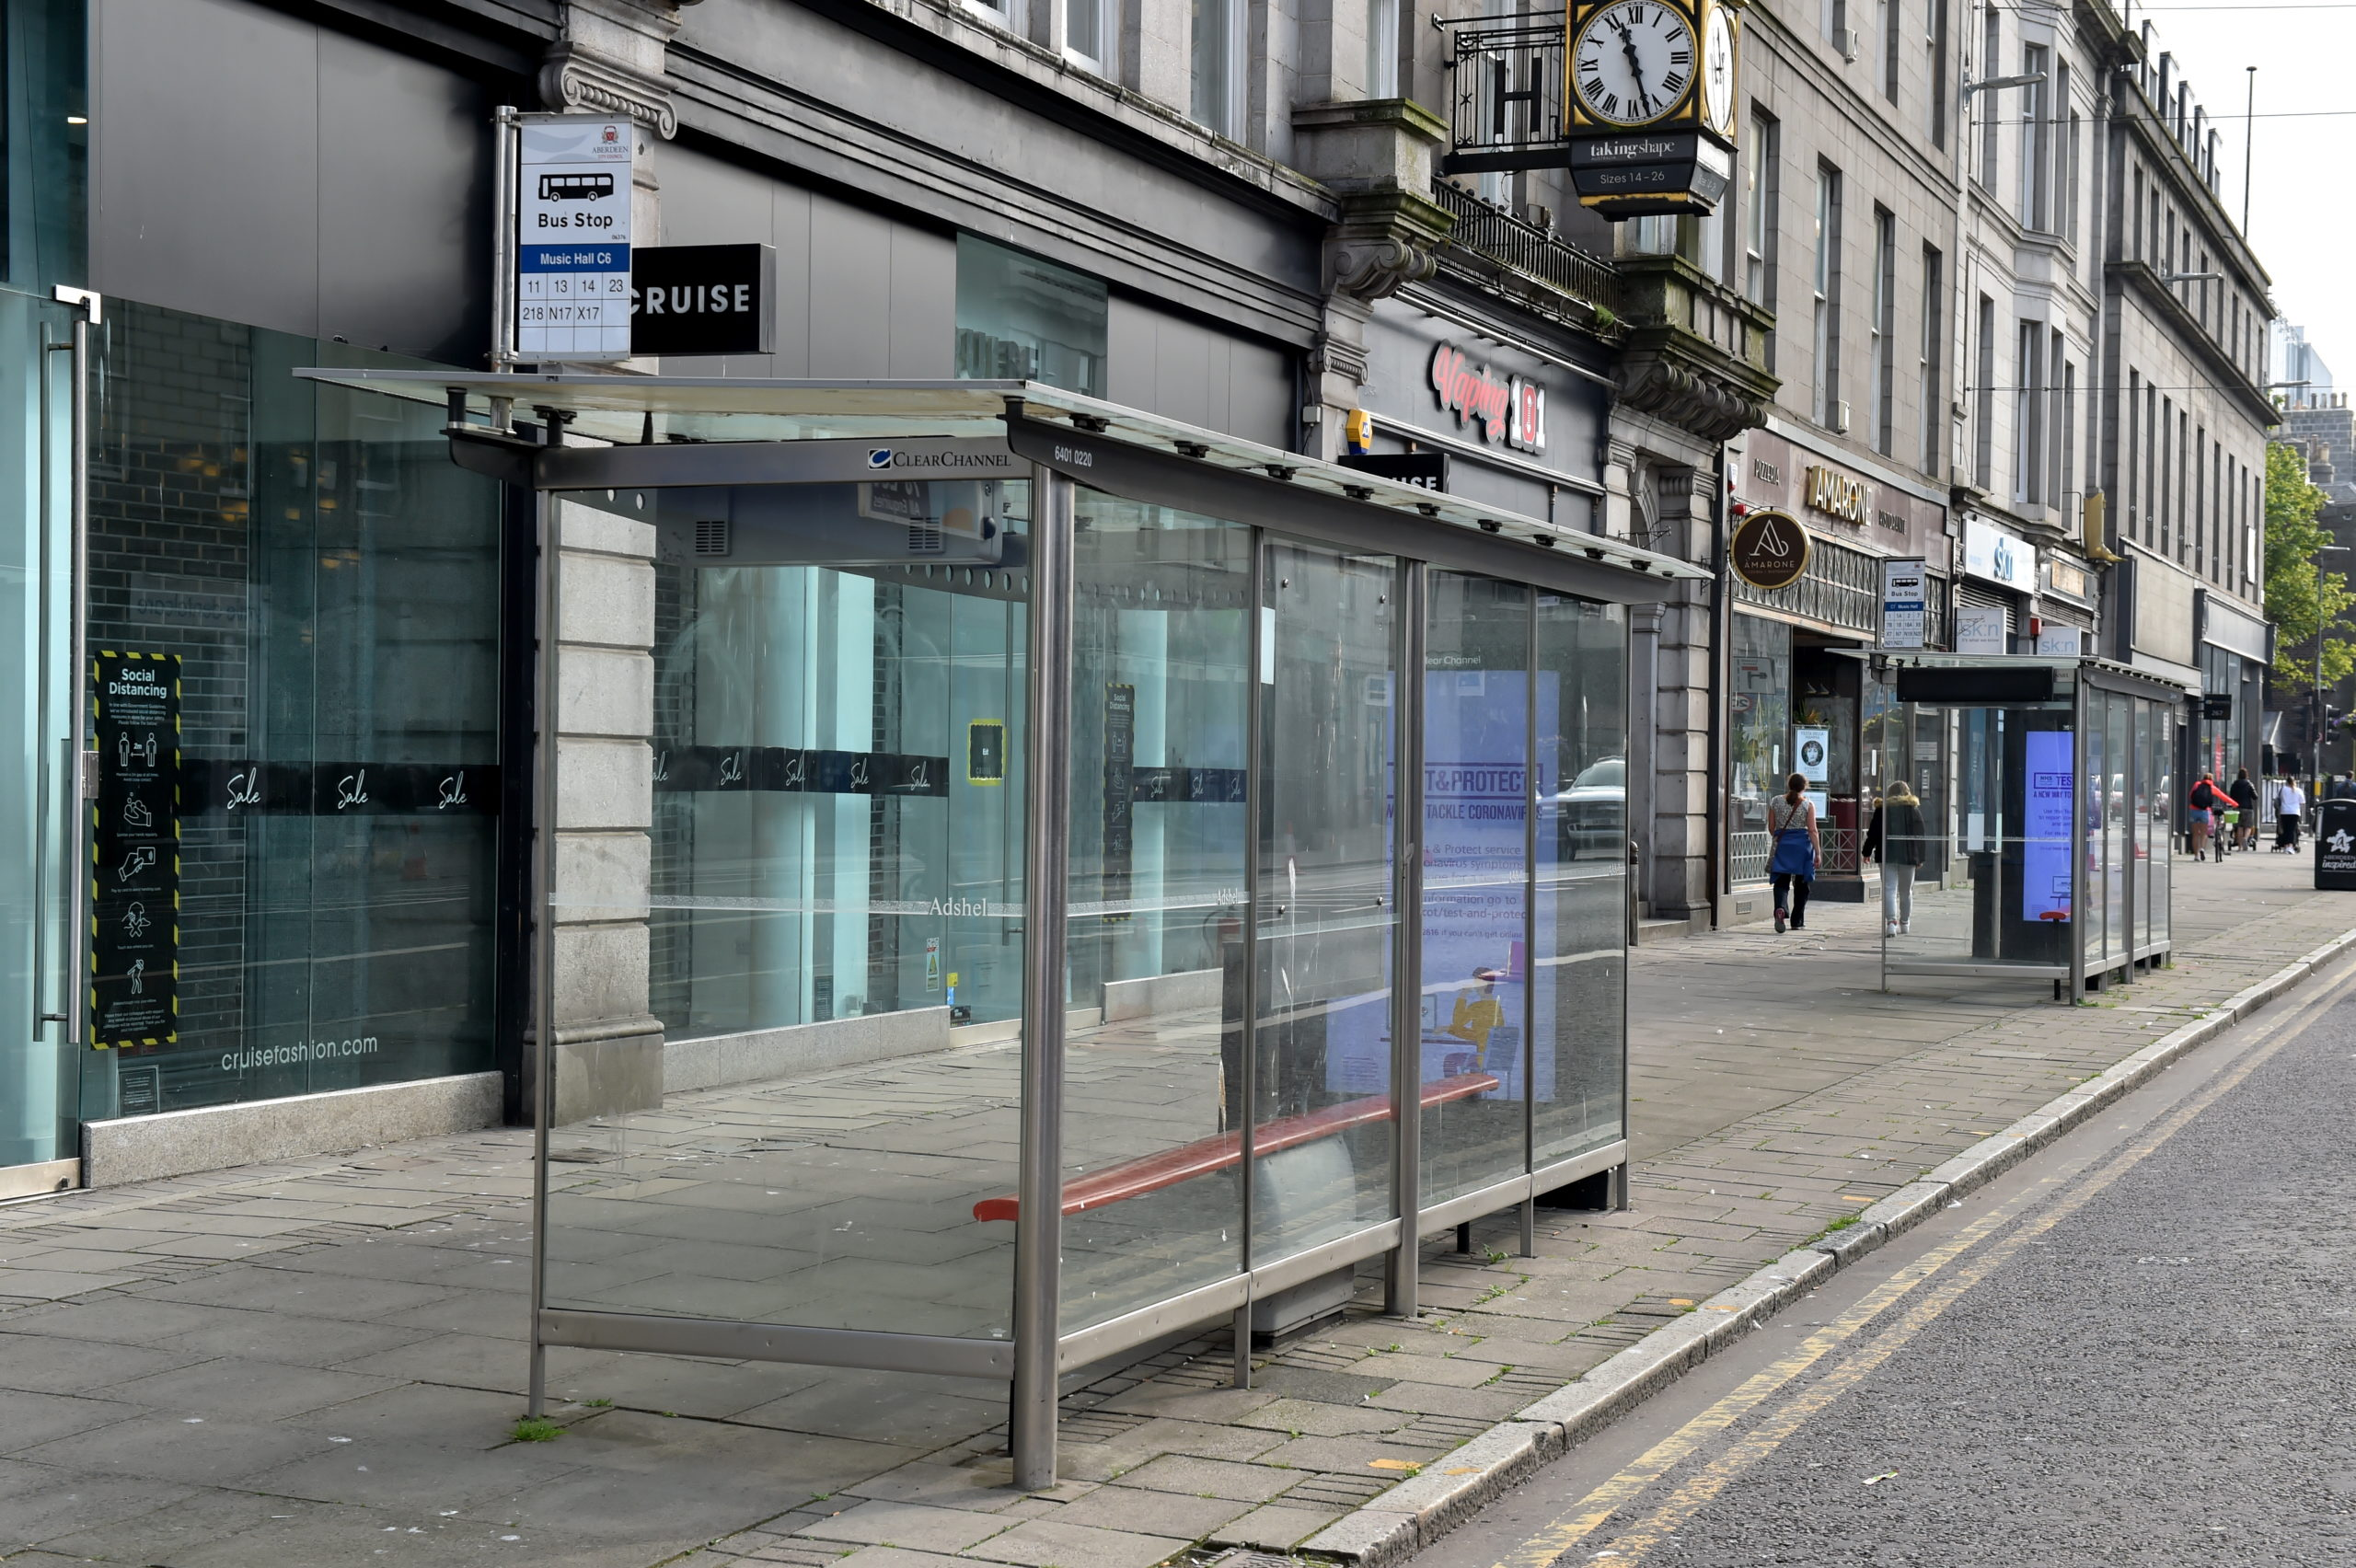 The bus stop on Union Street, opposite Huntly street, where the incident took place